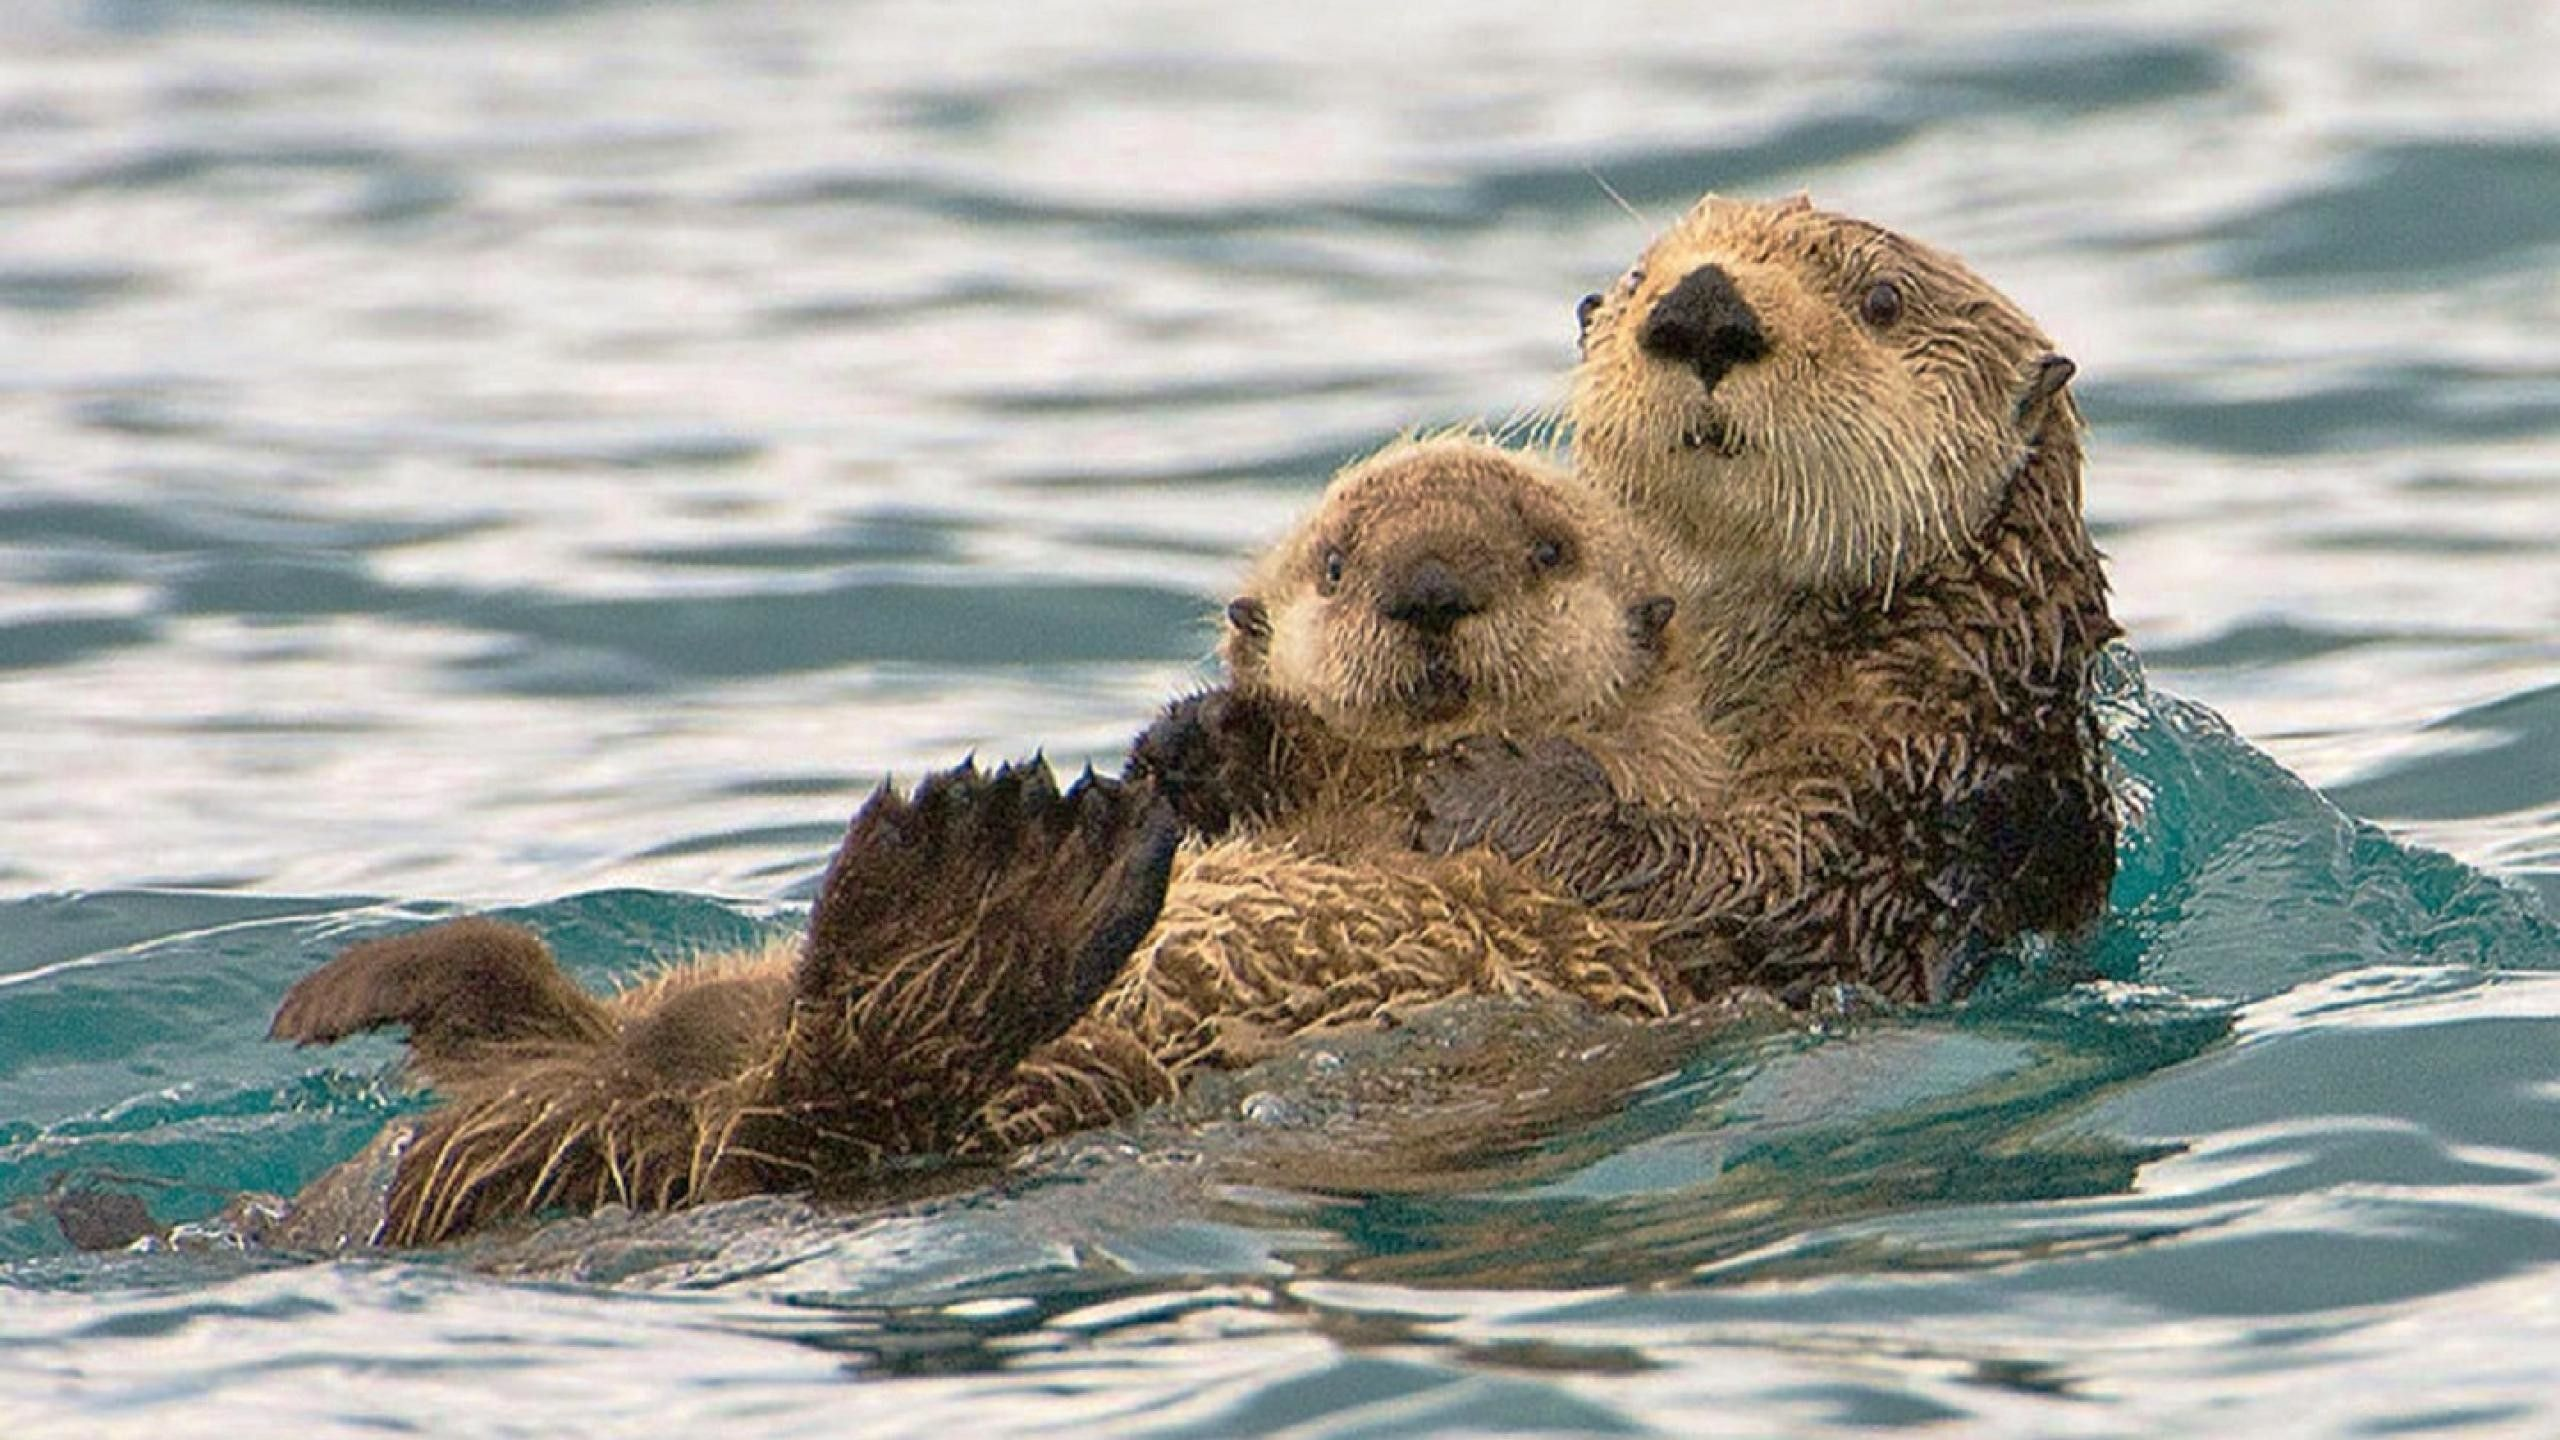 Sea Otter Wallpapers Top Free Sea Otter Backgrounds Wallpaperaccess